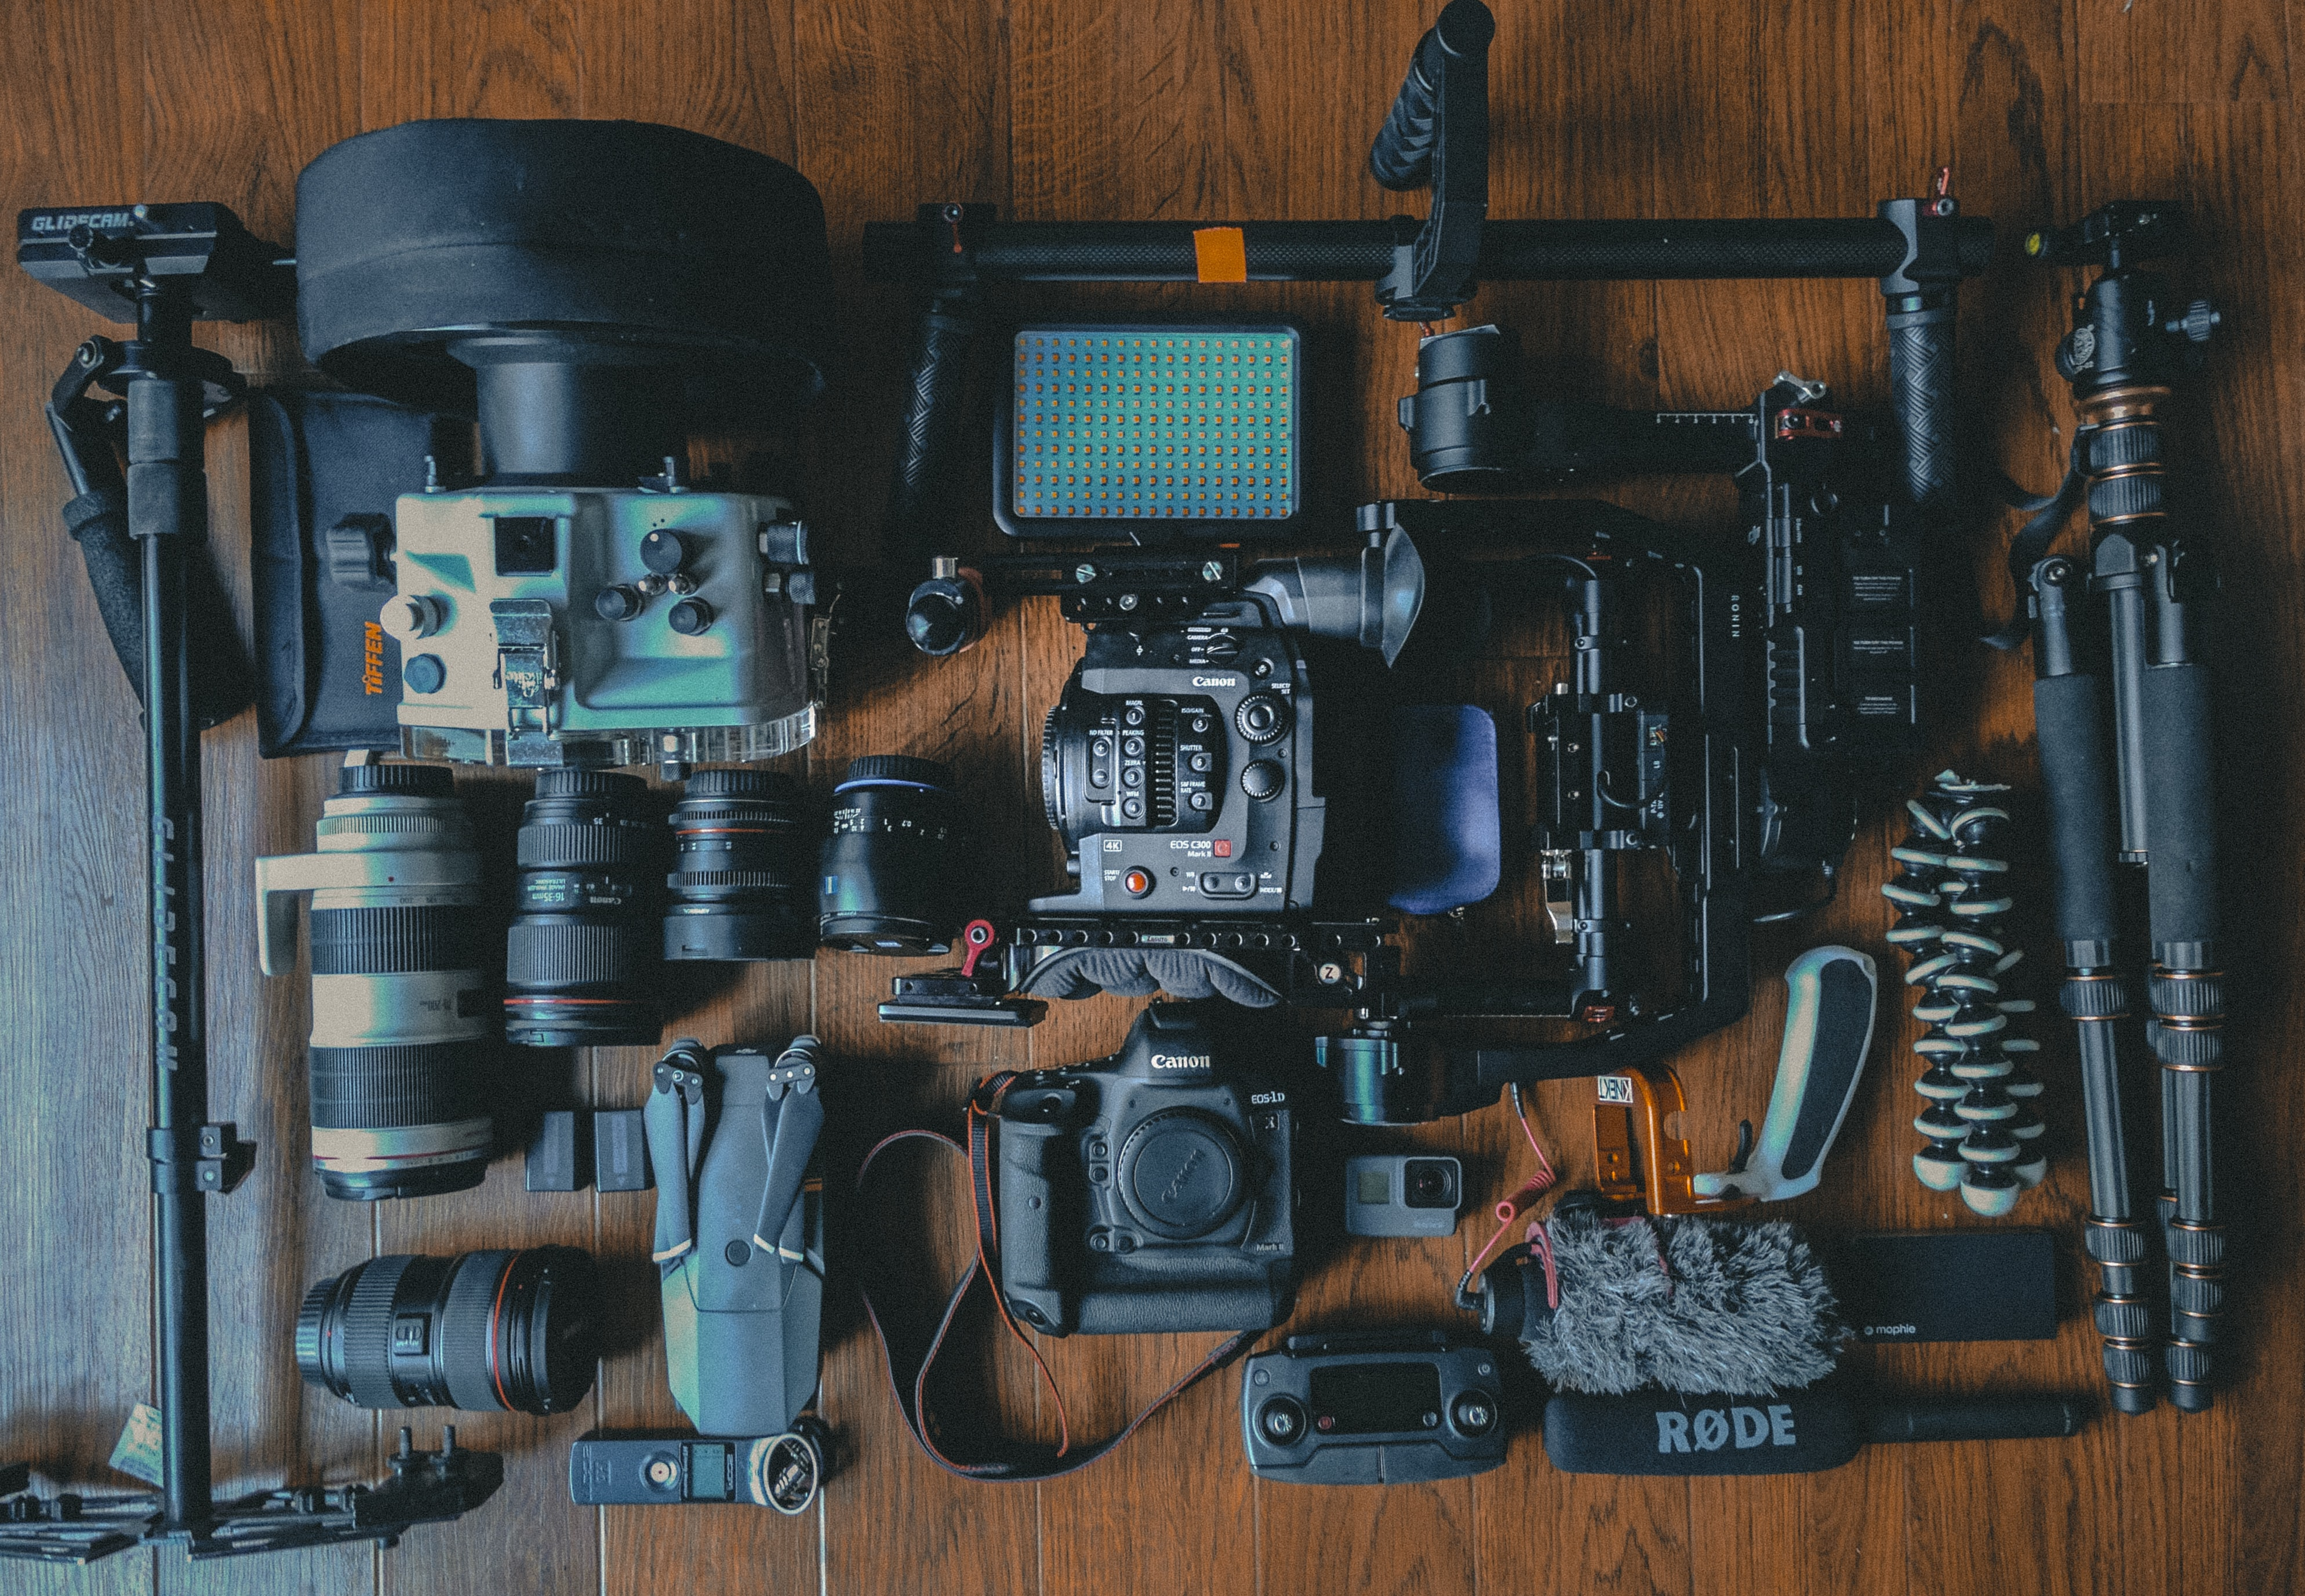 An overhead shot of a variety of photography equipment on a wooden surface